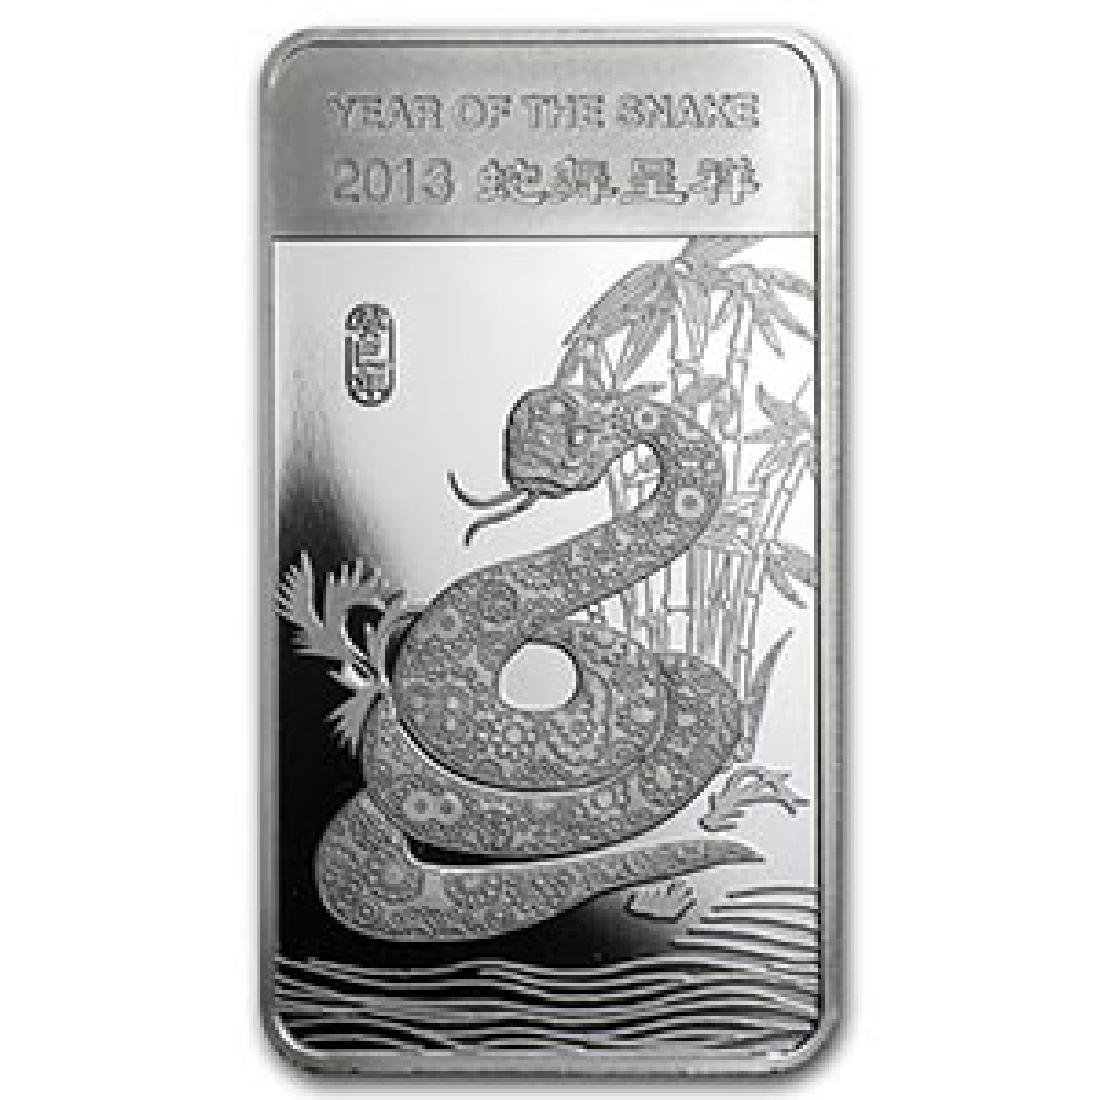 1/2 oz Silver Bar - (2013 Year of the Snake)